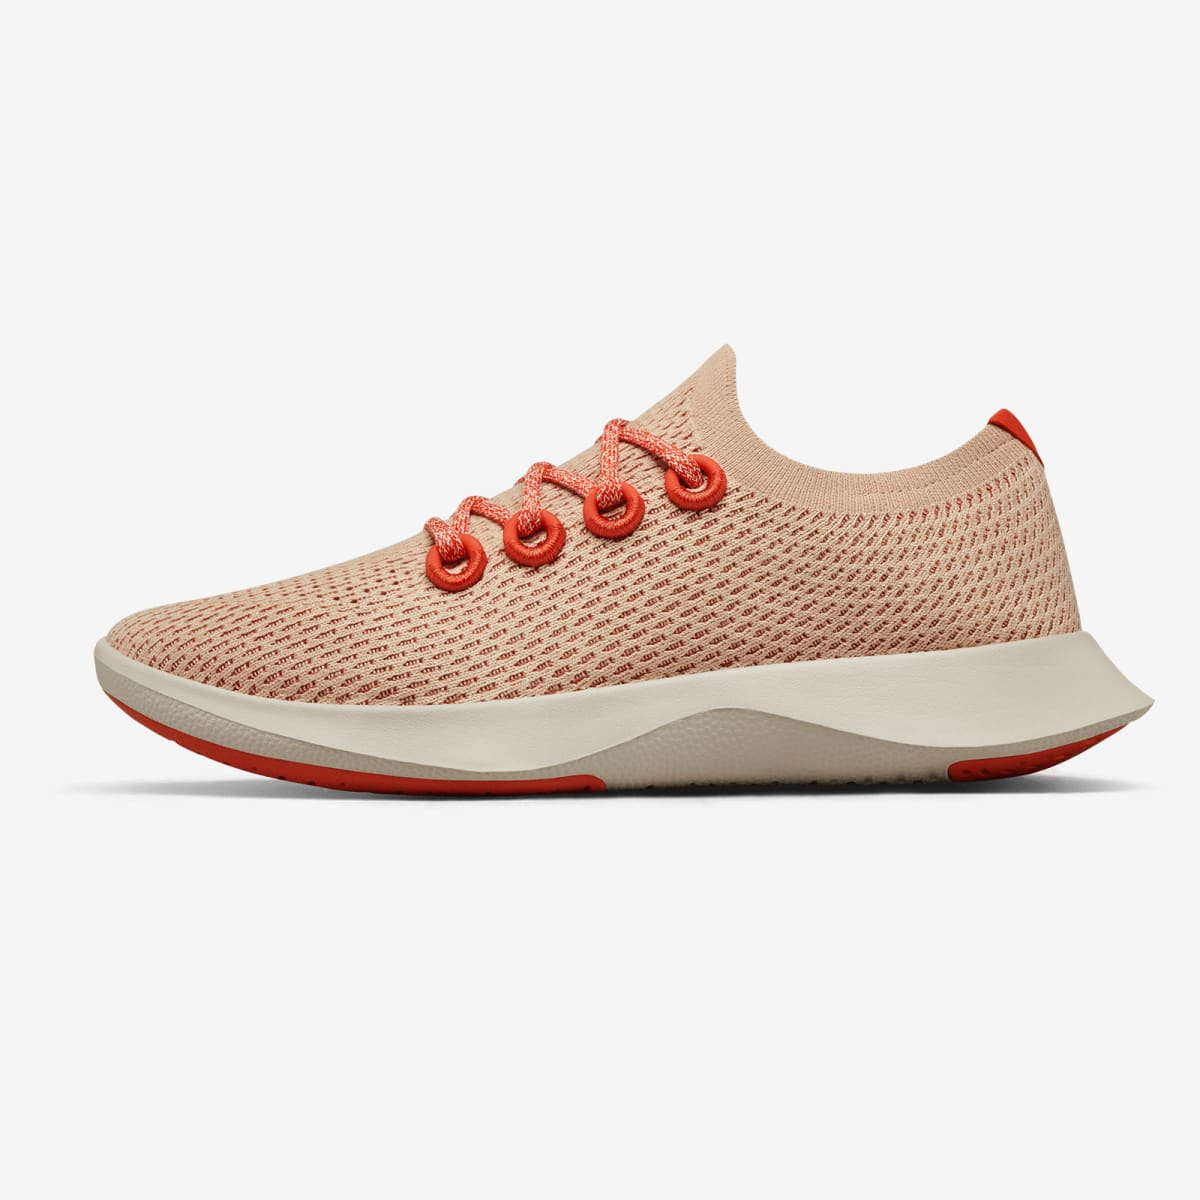 4. Tree Runners by Allbirds eco friendly running shoes